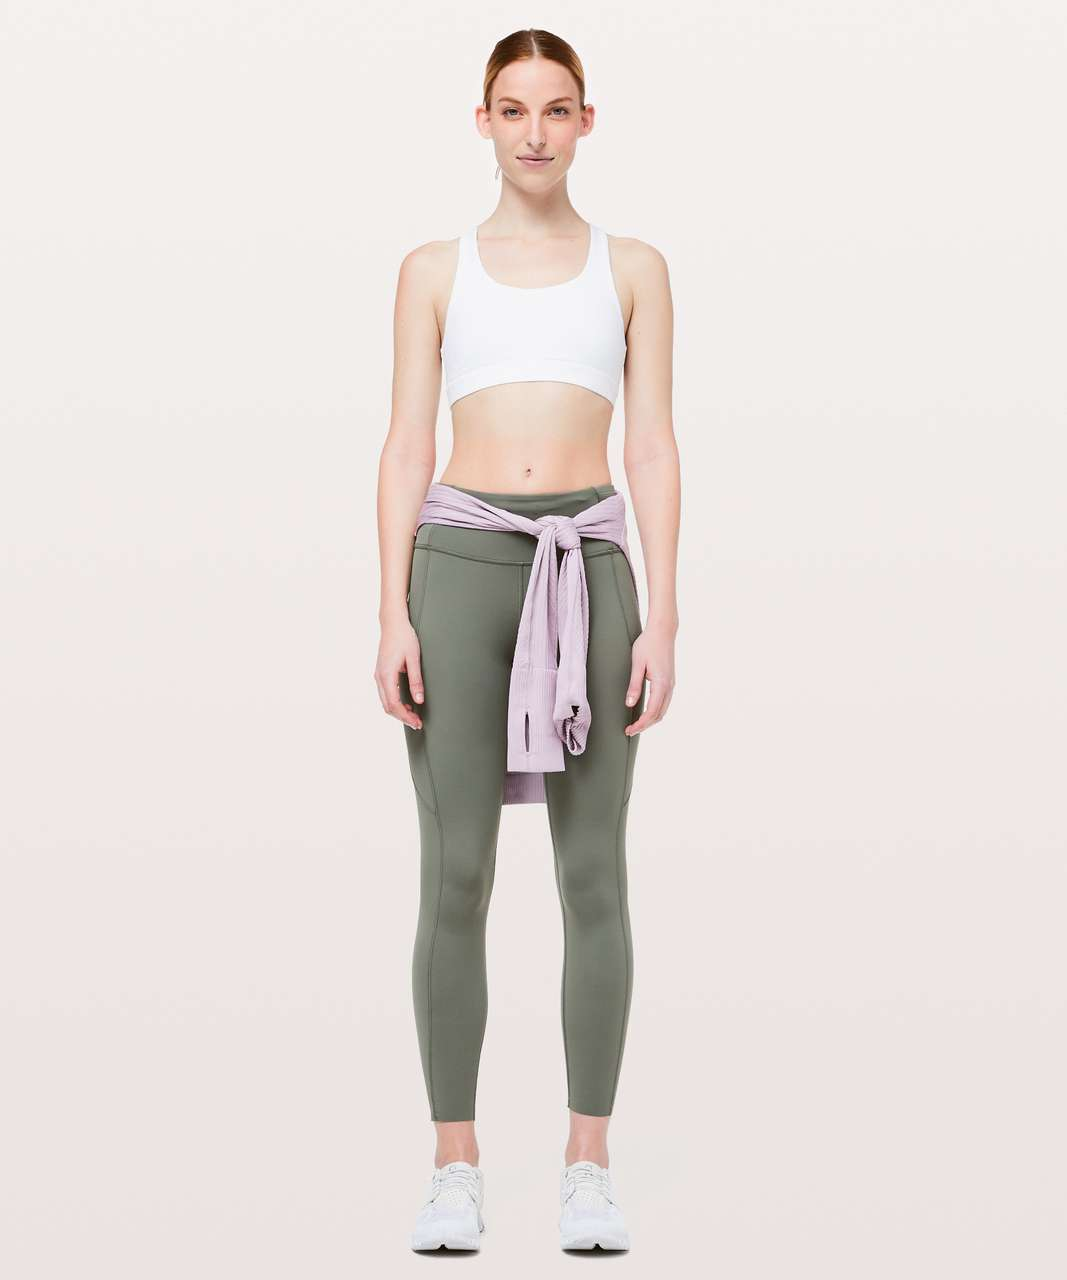 "Lululemon Fast & Free 7/8 Tight II *Non-Reflective Nulux 25"" - Grey Sage"